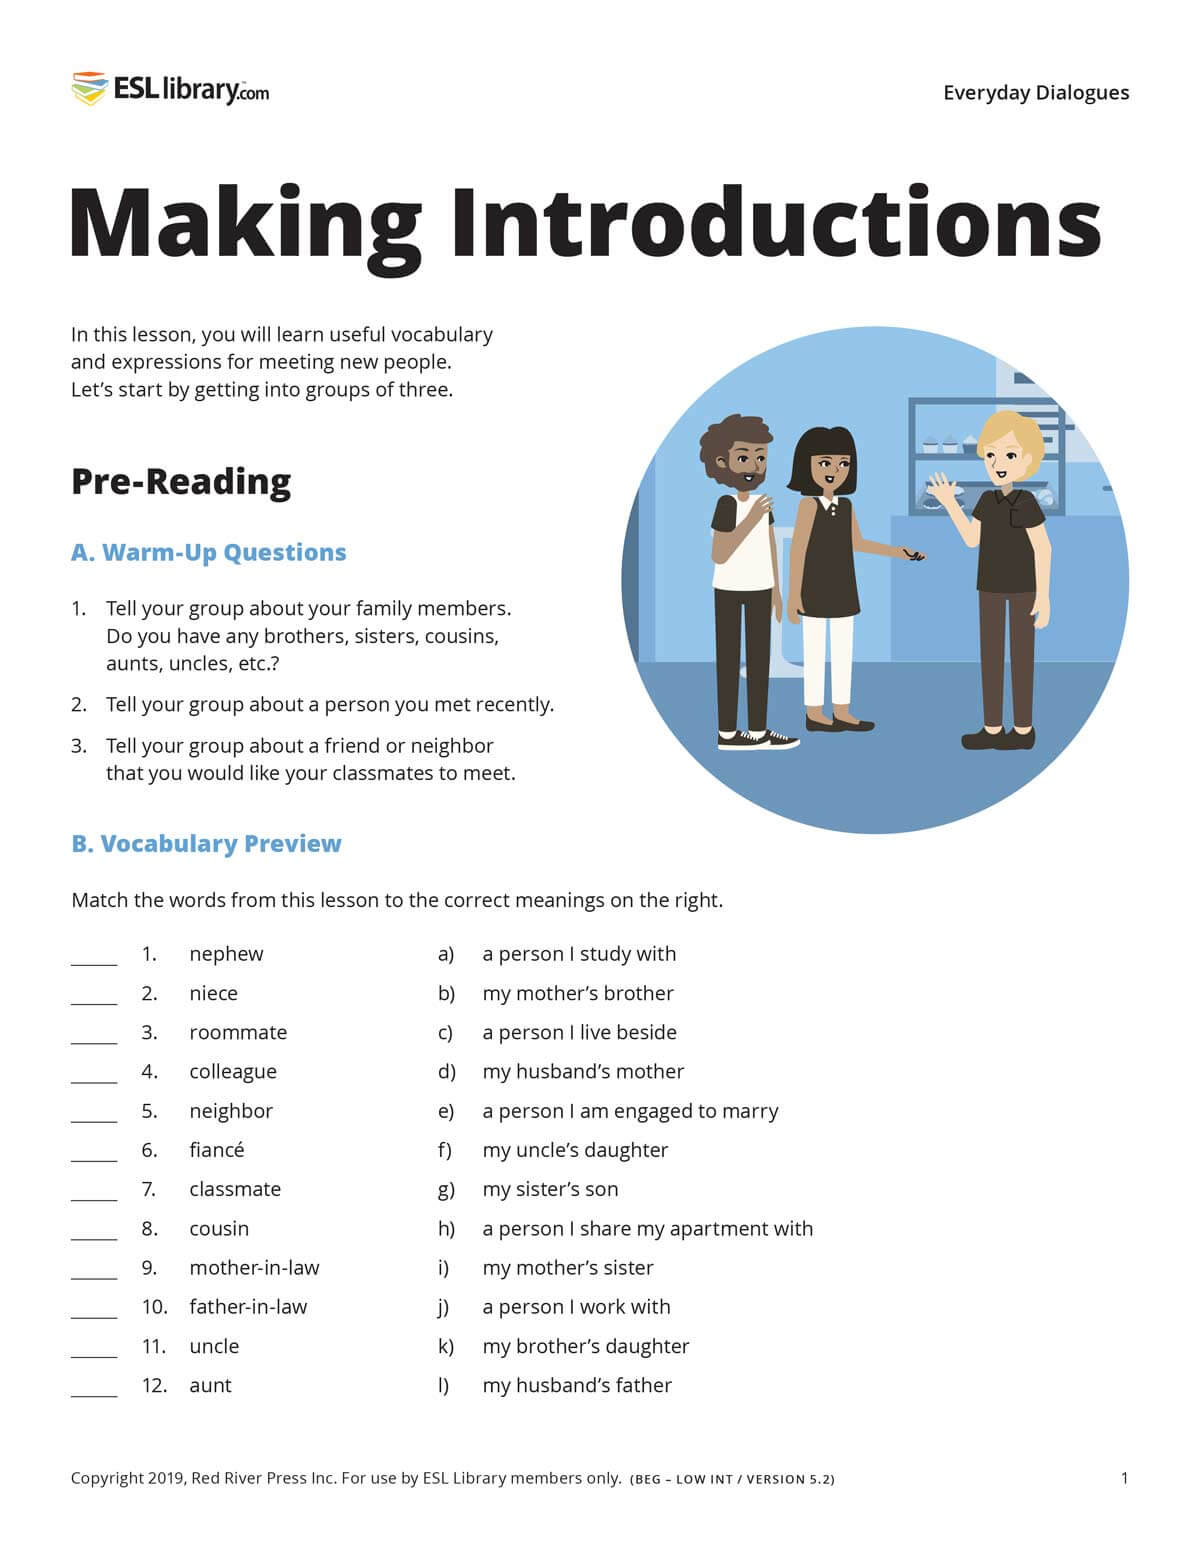 A sample lesson page from the print version of a dialogues lesson on Making Introductions, showing pre-reading activities such as warm-up questions and a vocabulary preview, as well as an illustration of three people talking in a cafe.